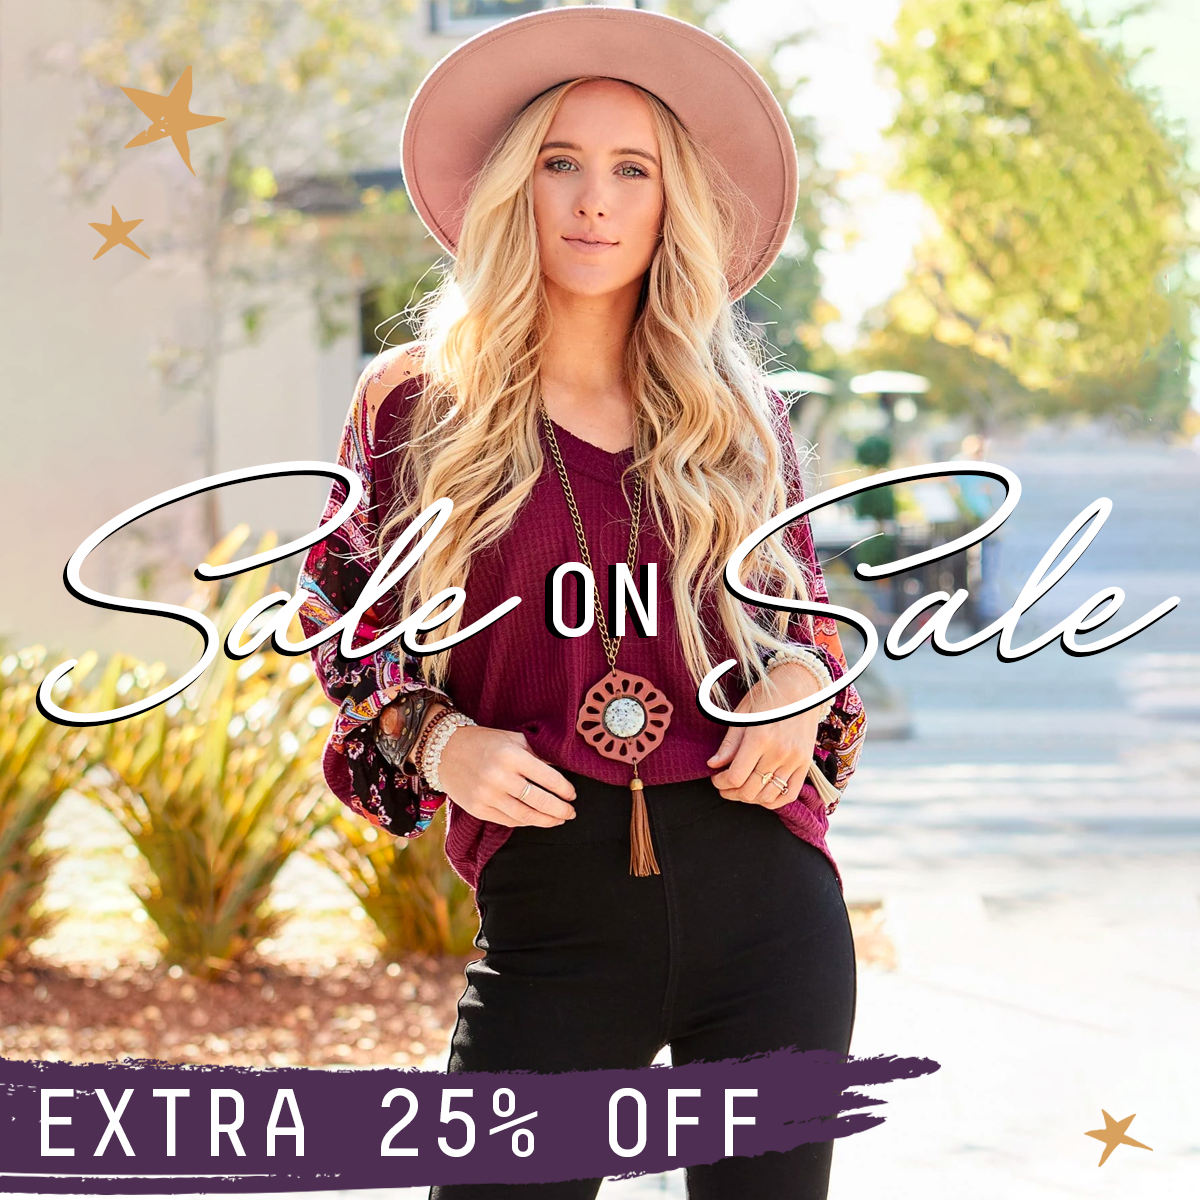 Sale On Sale: Get an extra 25% off sale items!